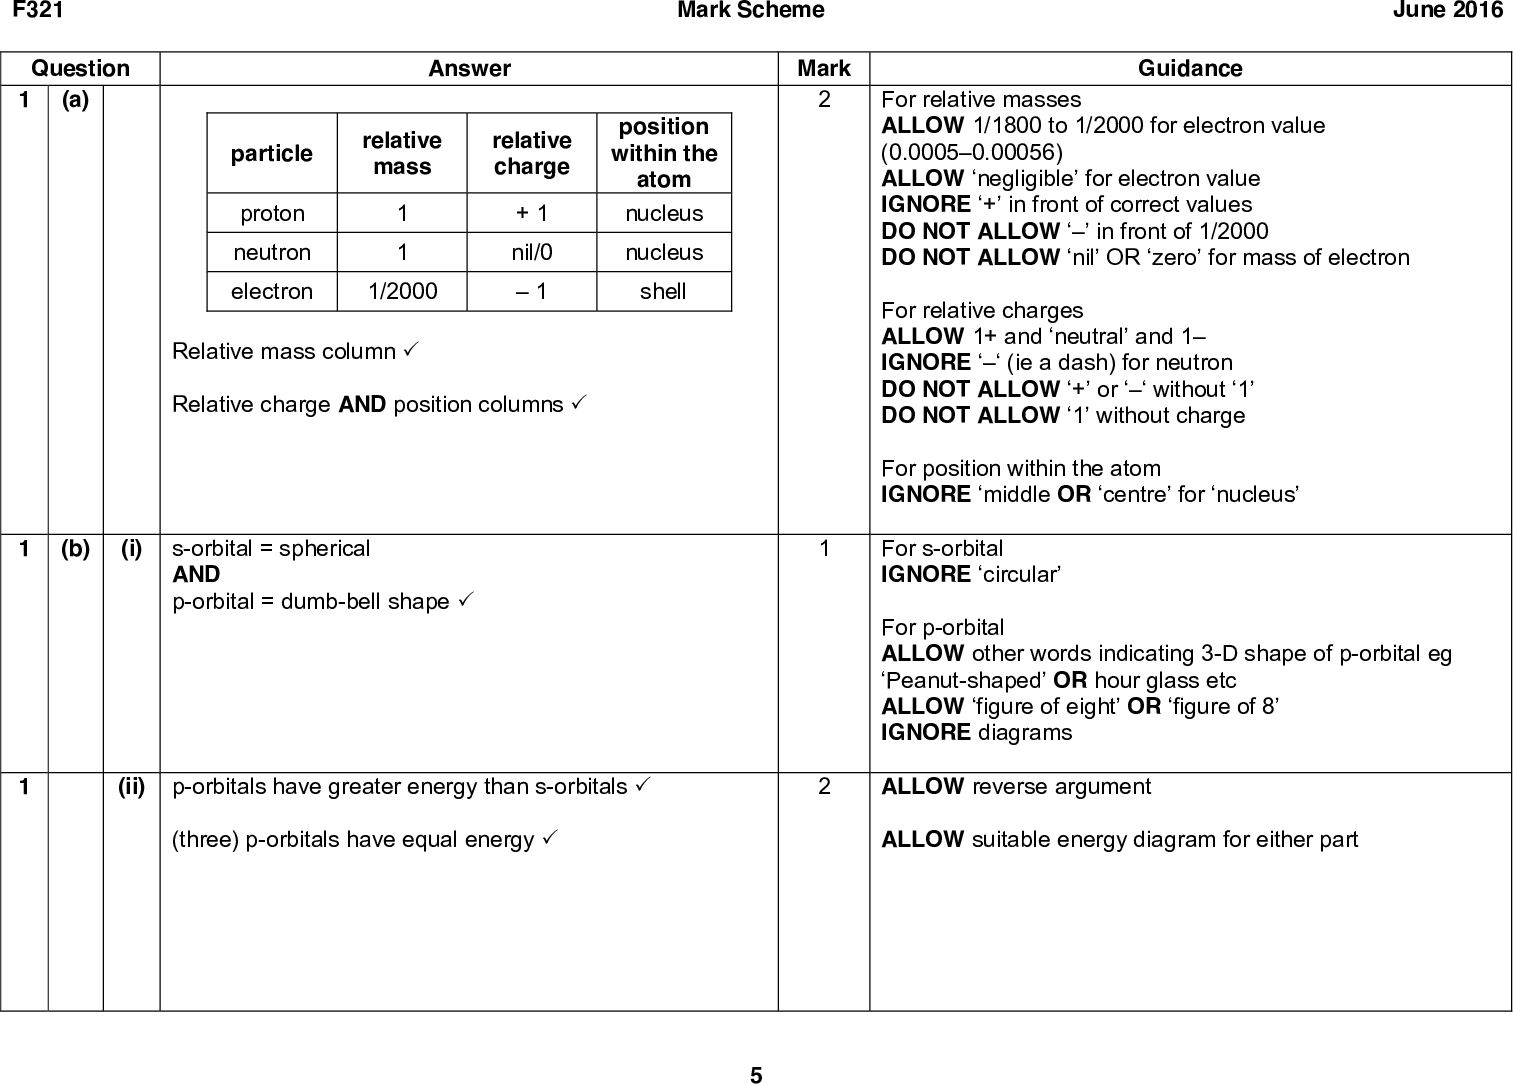 F321 Question 1 (a) Answer particle proton neutron electron relative mass relative charge 1 1 1/2000 + 1 nil/01 position within the atom nucleus nucleus shell Relative mass column (cid:51) Relative charge AND position columns (cid:51) Mark Scheme June 2016 Mark Guidance For relative masses ALLOW 1/1800 to 1/2000 for electron value (0.00050.00056) ALLOW negligible for electron value IGNORE + in front of correct values DO NOT ALLOWin front of 1/2000 DO NOT ALLOW nil OR zero for mass of electron For relative charges ALLOW 1+ and neutral and 1 IGNORE(ie a dash) for neutron DO NOT ALLOW + orwithout 1 DO NOT ALLOW 1 without charge For position within the atom IGNORE middle OR centre for nucleus For s-orbital IGNORE circular For p-orbital ALLOW other words indicating 3-D shape of p-orbital eg Peanut-shaped OR hour glass etc ALLOW figure of eight OR figure of 8 IGNORE diagrams ALLOW reverse argument ALLOW suitable energy diagram for either part (b) (i) s-orbital = spherical AND p-orbital = dumb-bell shape (cid:51) (ii) p-orbitals have greater energy than s-orbitals (cid:51) (three) p-orbitals have equal energy (cid:51)<br />  F321 Question 1 (c) (d) Mark Scheme June 2016 Mark ALLOW all dots or all crosses. Guidance ALLOW one mark for 0.17 x 102 OR 0.017 x 101 OR 0.0017 (not standard form) ALLOW one mark for 4.25 x 104 (dividing by 2 in M2 + standard form) ALLOW one mark for 6.16 x 1044 (multiplying by 6.02 x 1023 in M1 + standard form) Answer x xx N x x (cid:51) First check the answer line. If answer = 1.7(0) x 103 award 2 marks. ------------------------------------------------------------------------ M1 (Dividing by 6.02 x 1023) Number of N2 molecules = 5.117 x 1020 = 8.5. x 104 6.02 x 1023 OR 0.85 x 103 OR 0.085 x 102 OR 0.0085 x 101 OR 0.00085 (cid:51) M2 (Correct conversion of molecules to atoms + standard form) M1 x 2 and in standard form (cid:51) From 0.0085, answer = 2 x 0.00085 = 0.00170 = 1.7(0) x 103 Alternative method M1 (Correct conversion of molecules to atoms)